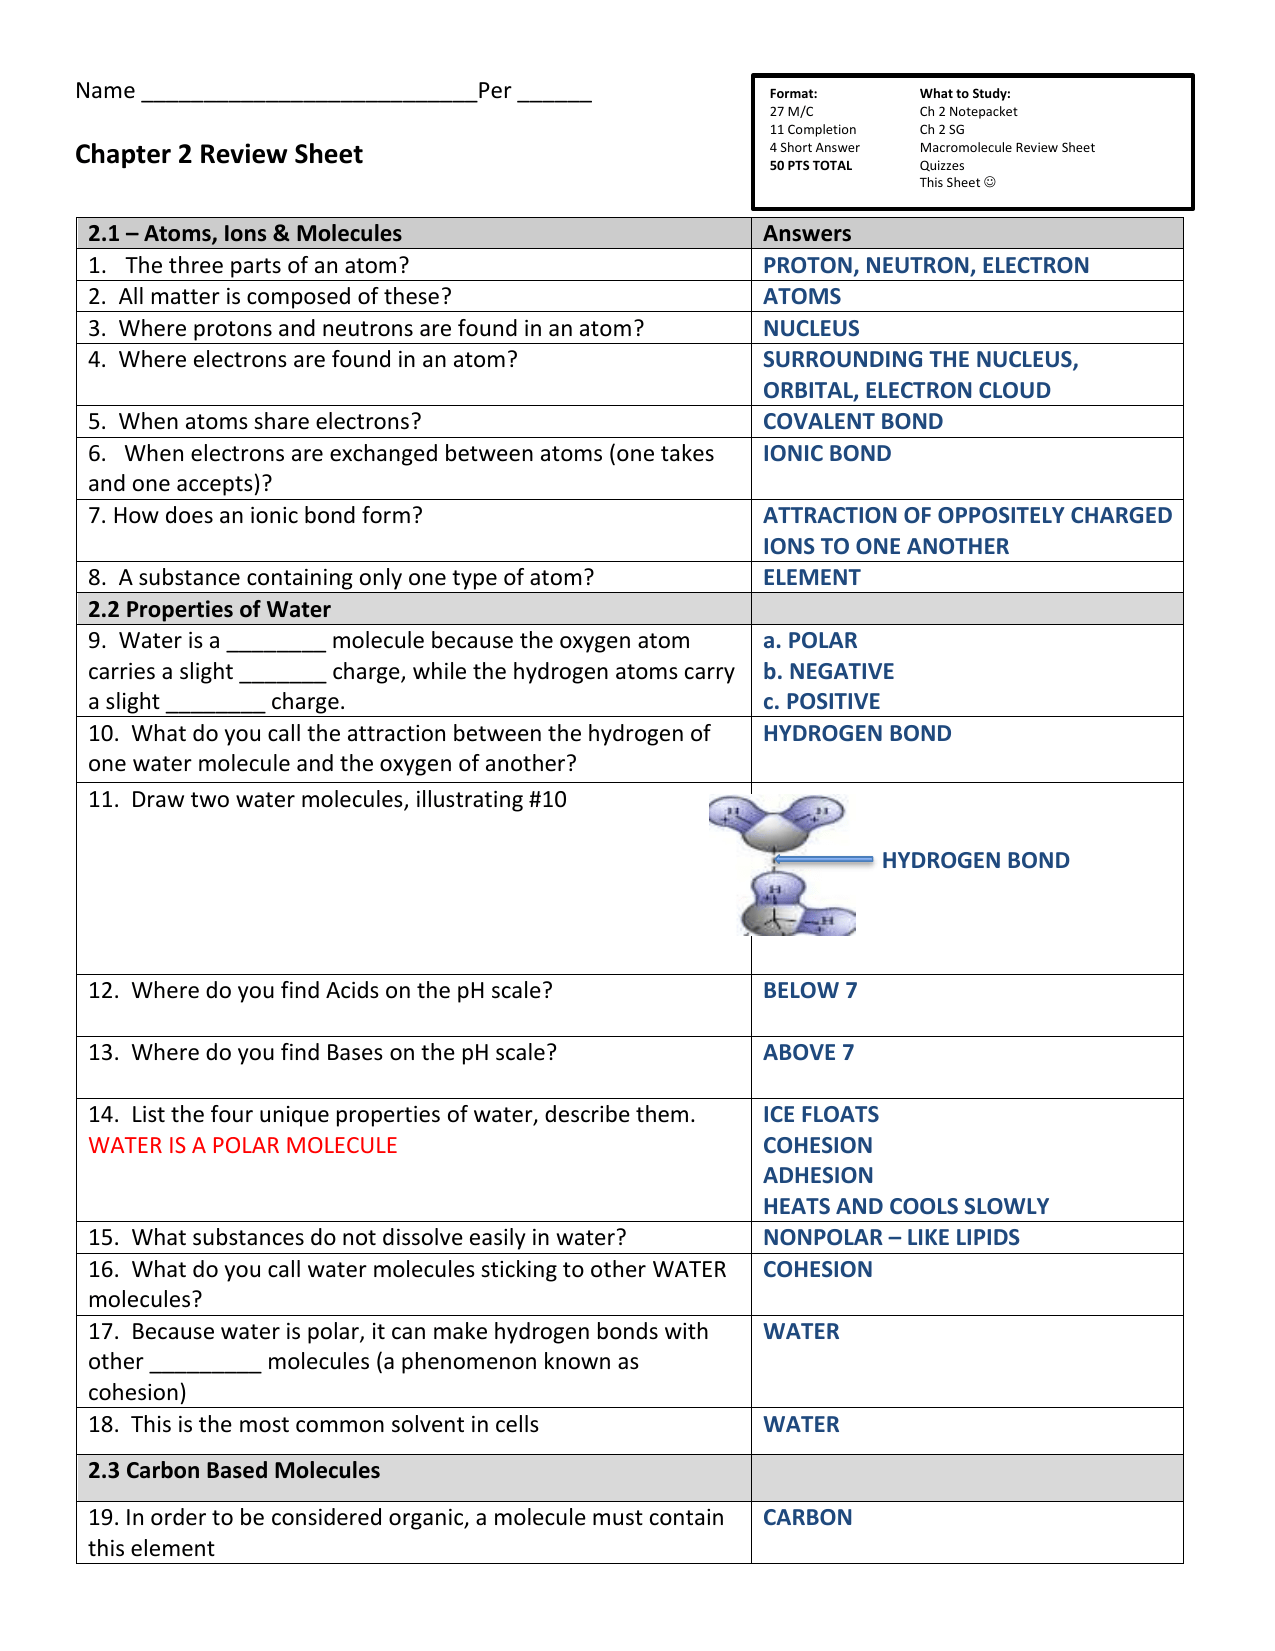 Chapter 2 Review Sheet Answers